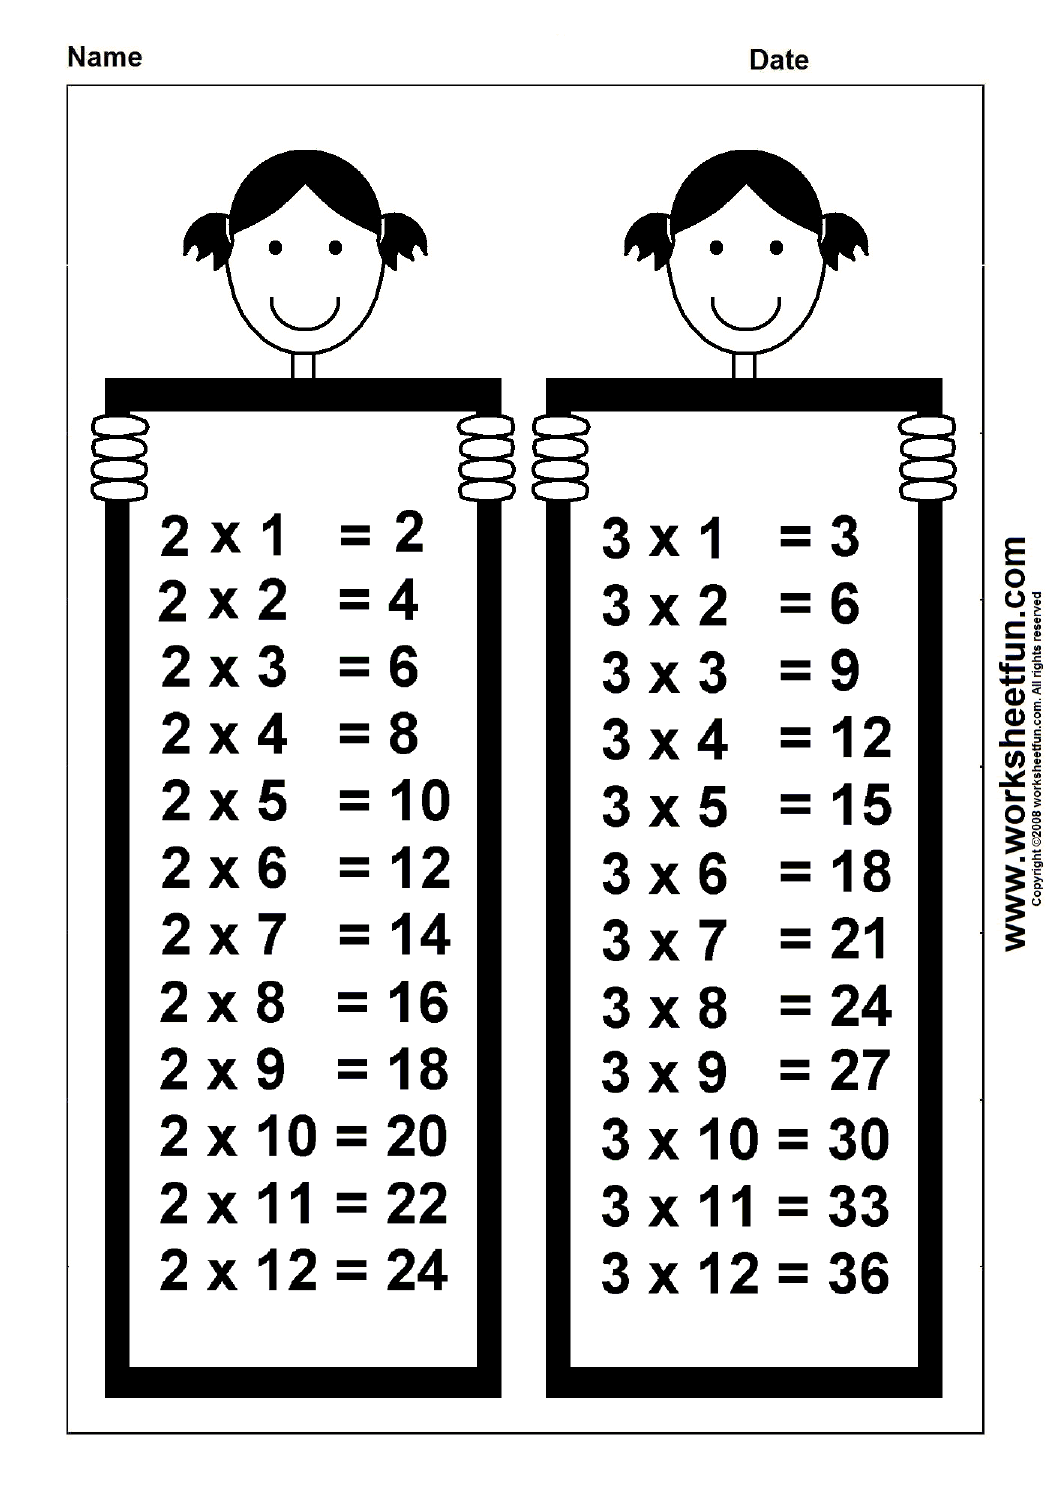 Times Table Chart 2 Amp 3 Free Printable Worksheets